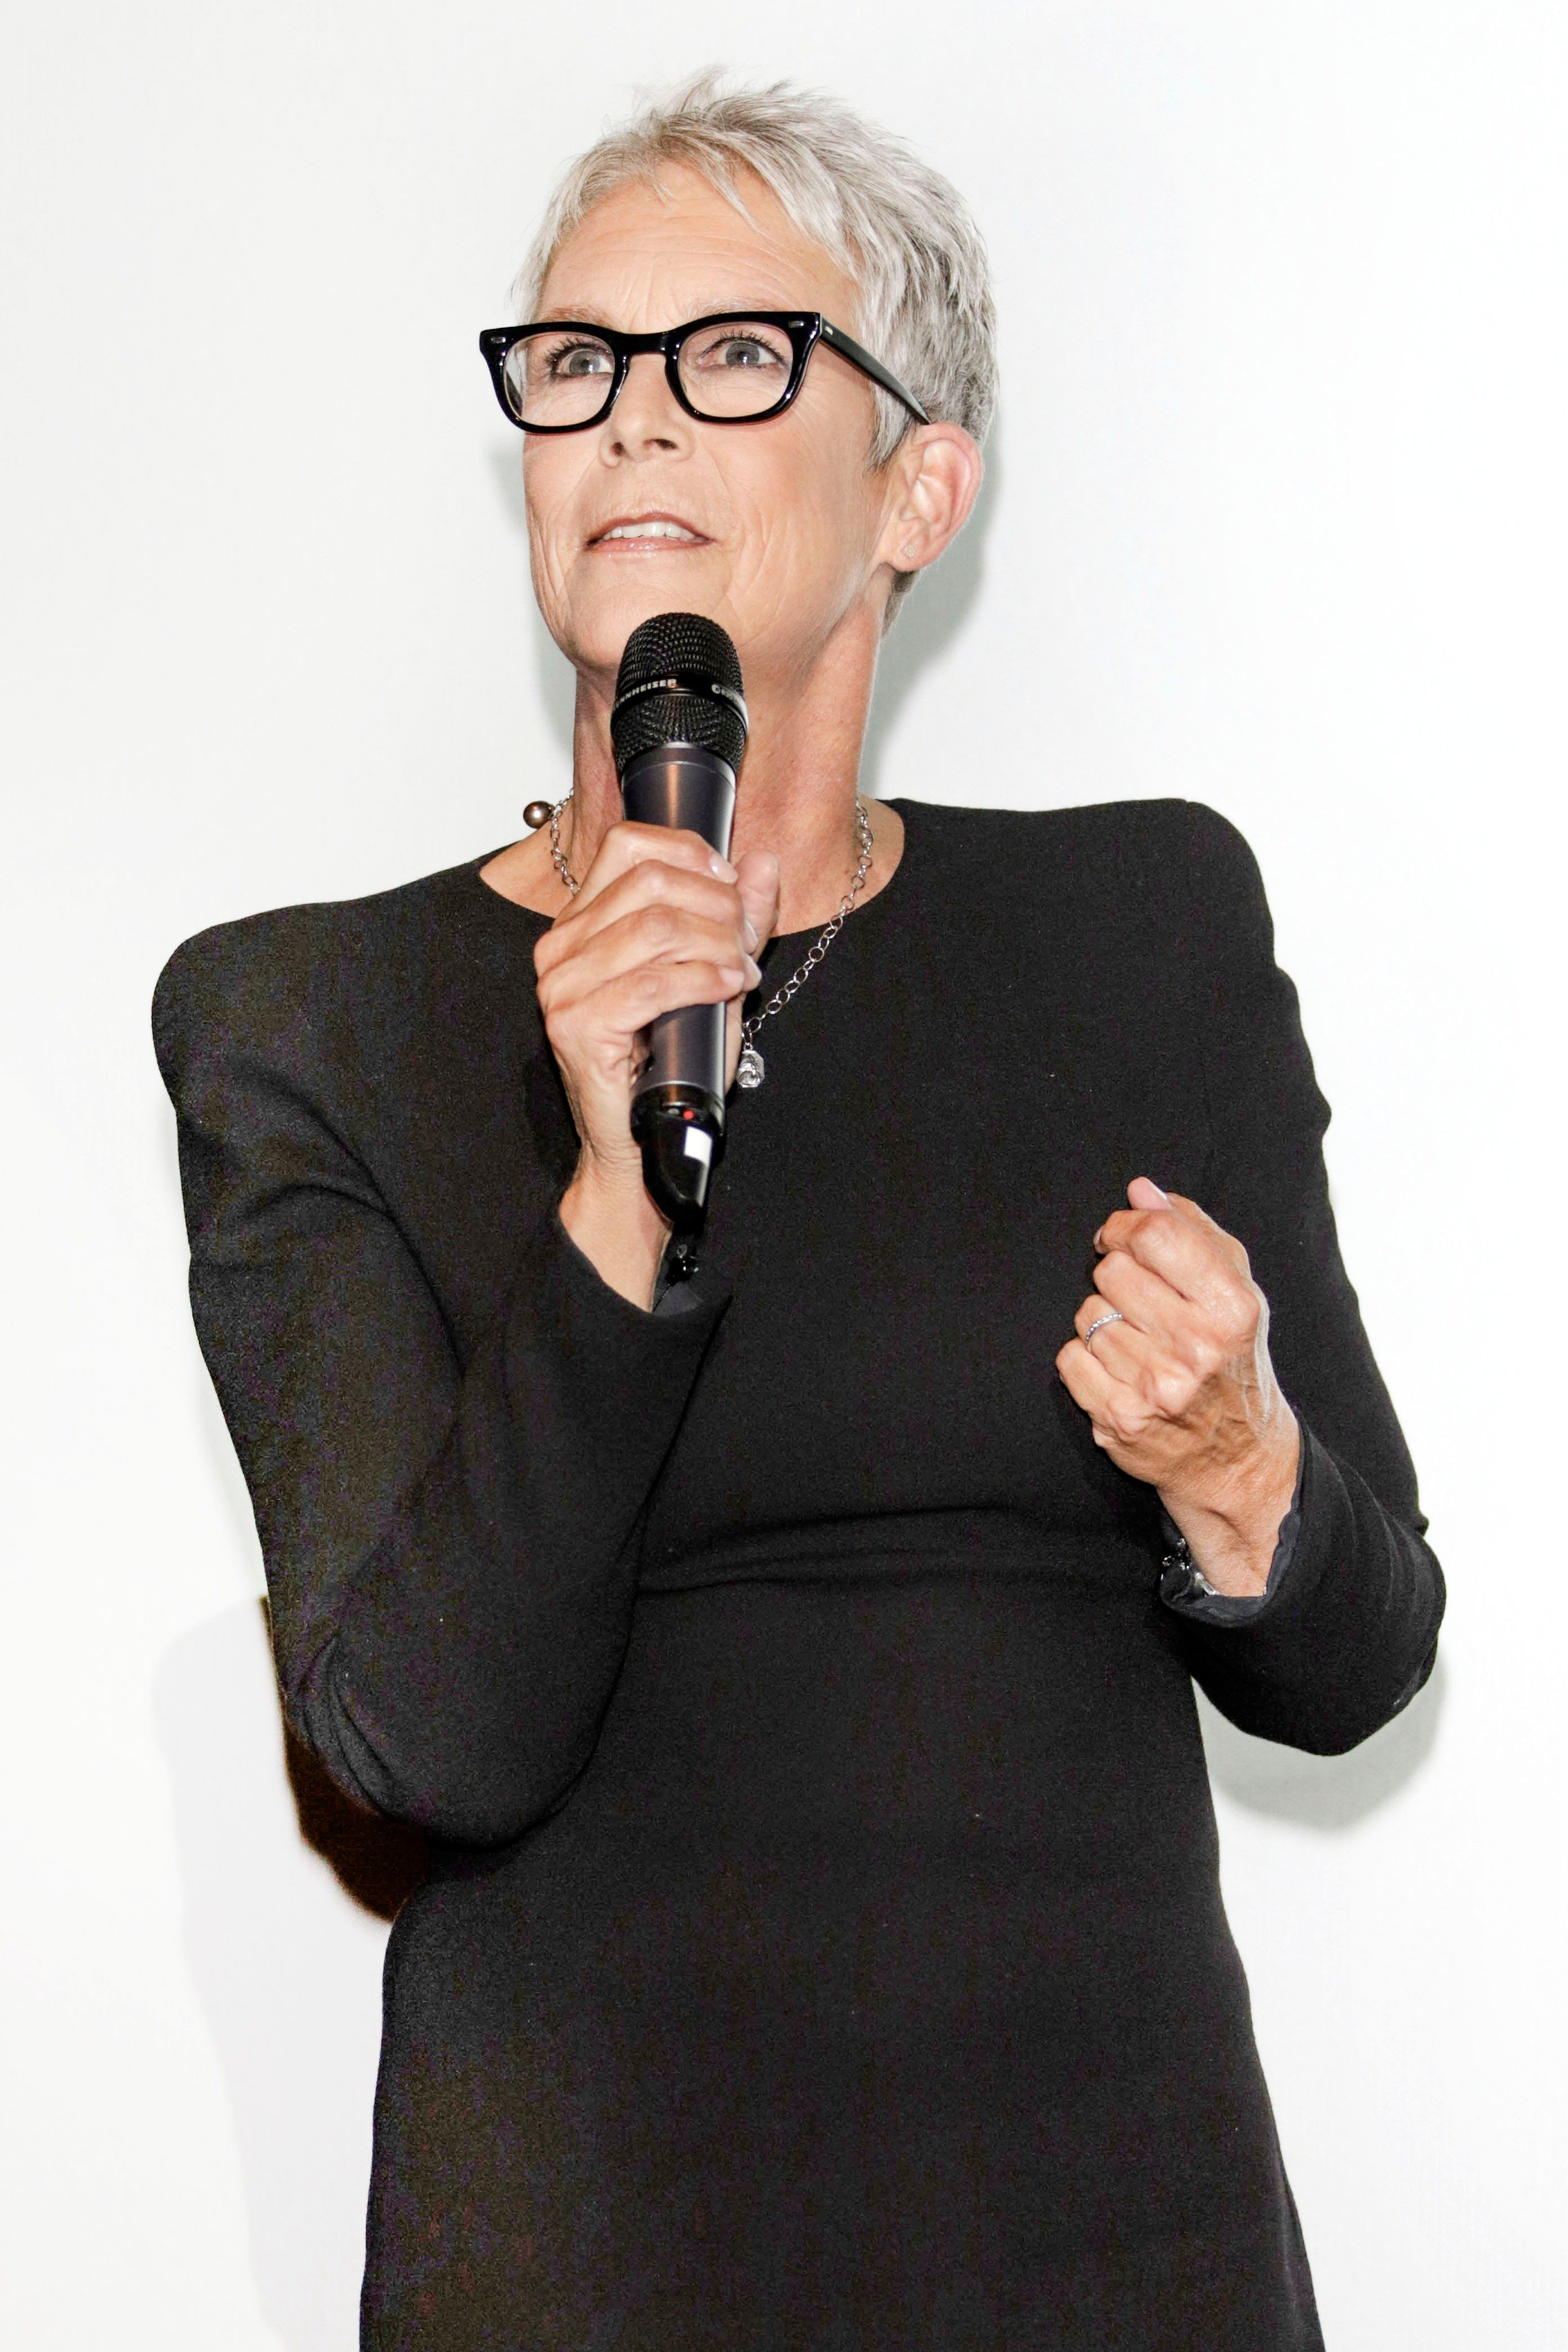 HAMBURG, GERMANY - OCTOBER 02: Jamie Lee Curtis attends the German premiere of the film 'Halloween' during the Hamburg Film Festival  on October 02, 2018 in Hamburg, Germany. (Photo by Tristar Media/Getty Images)